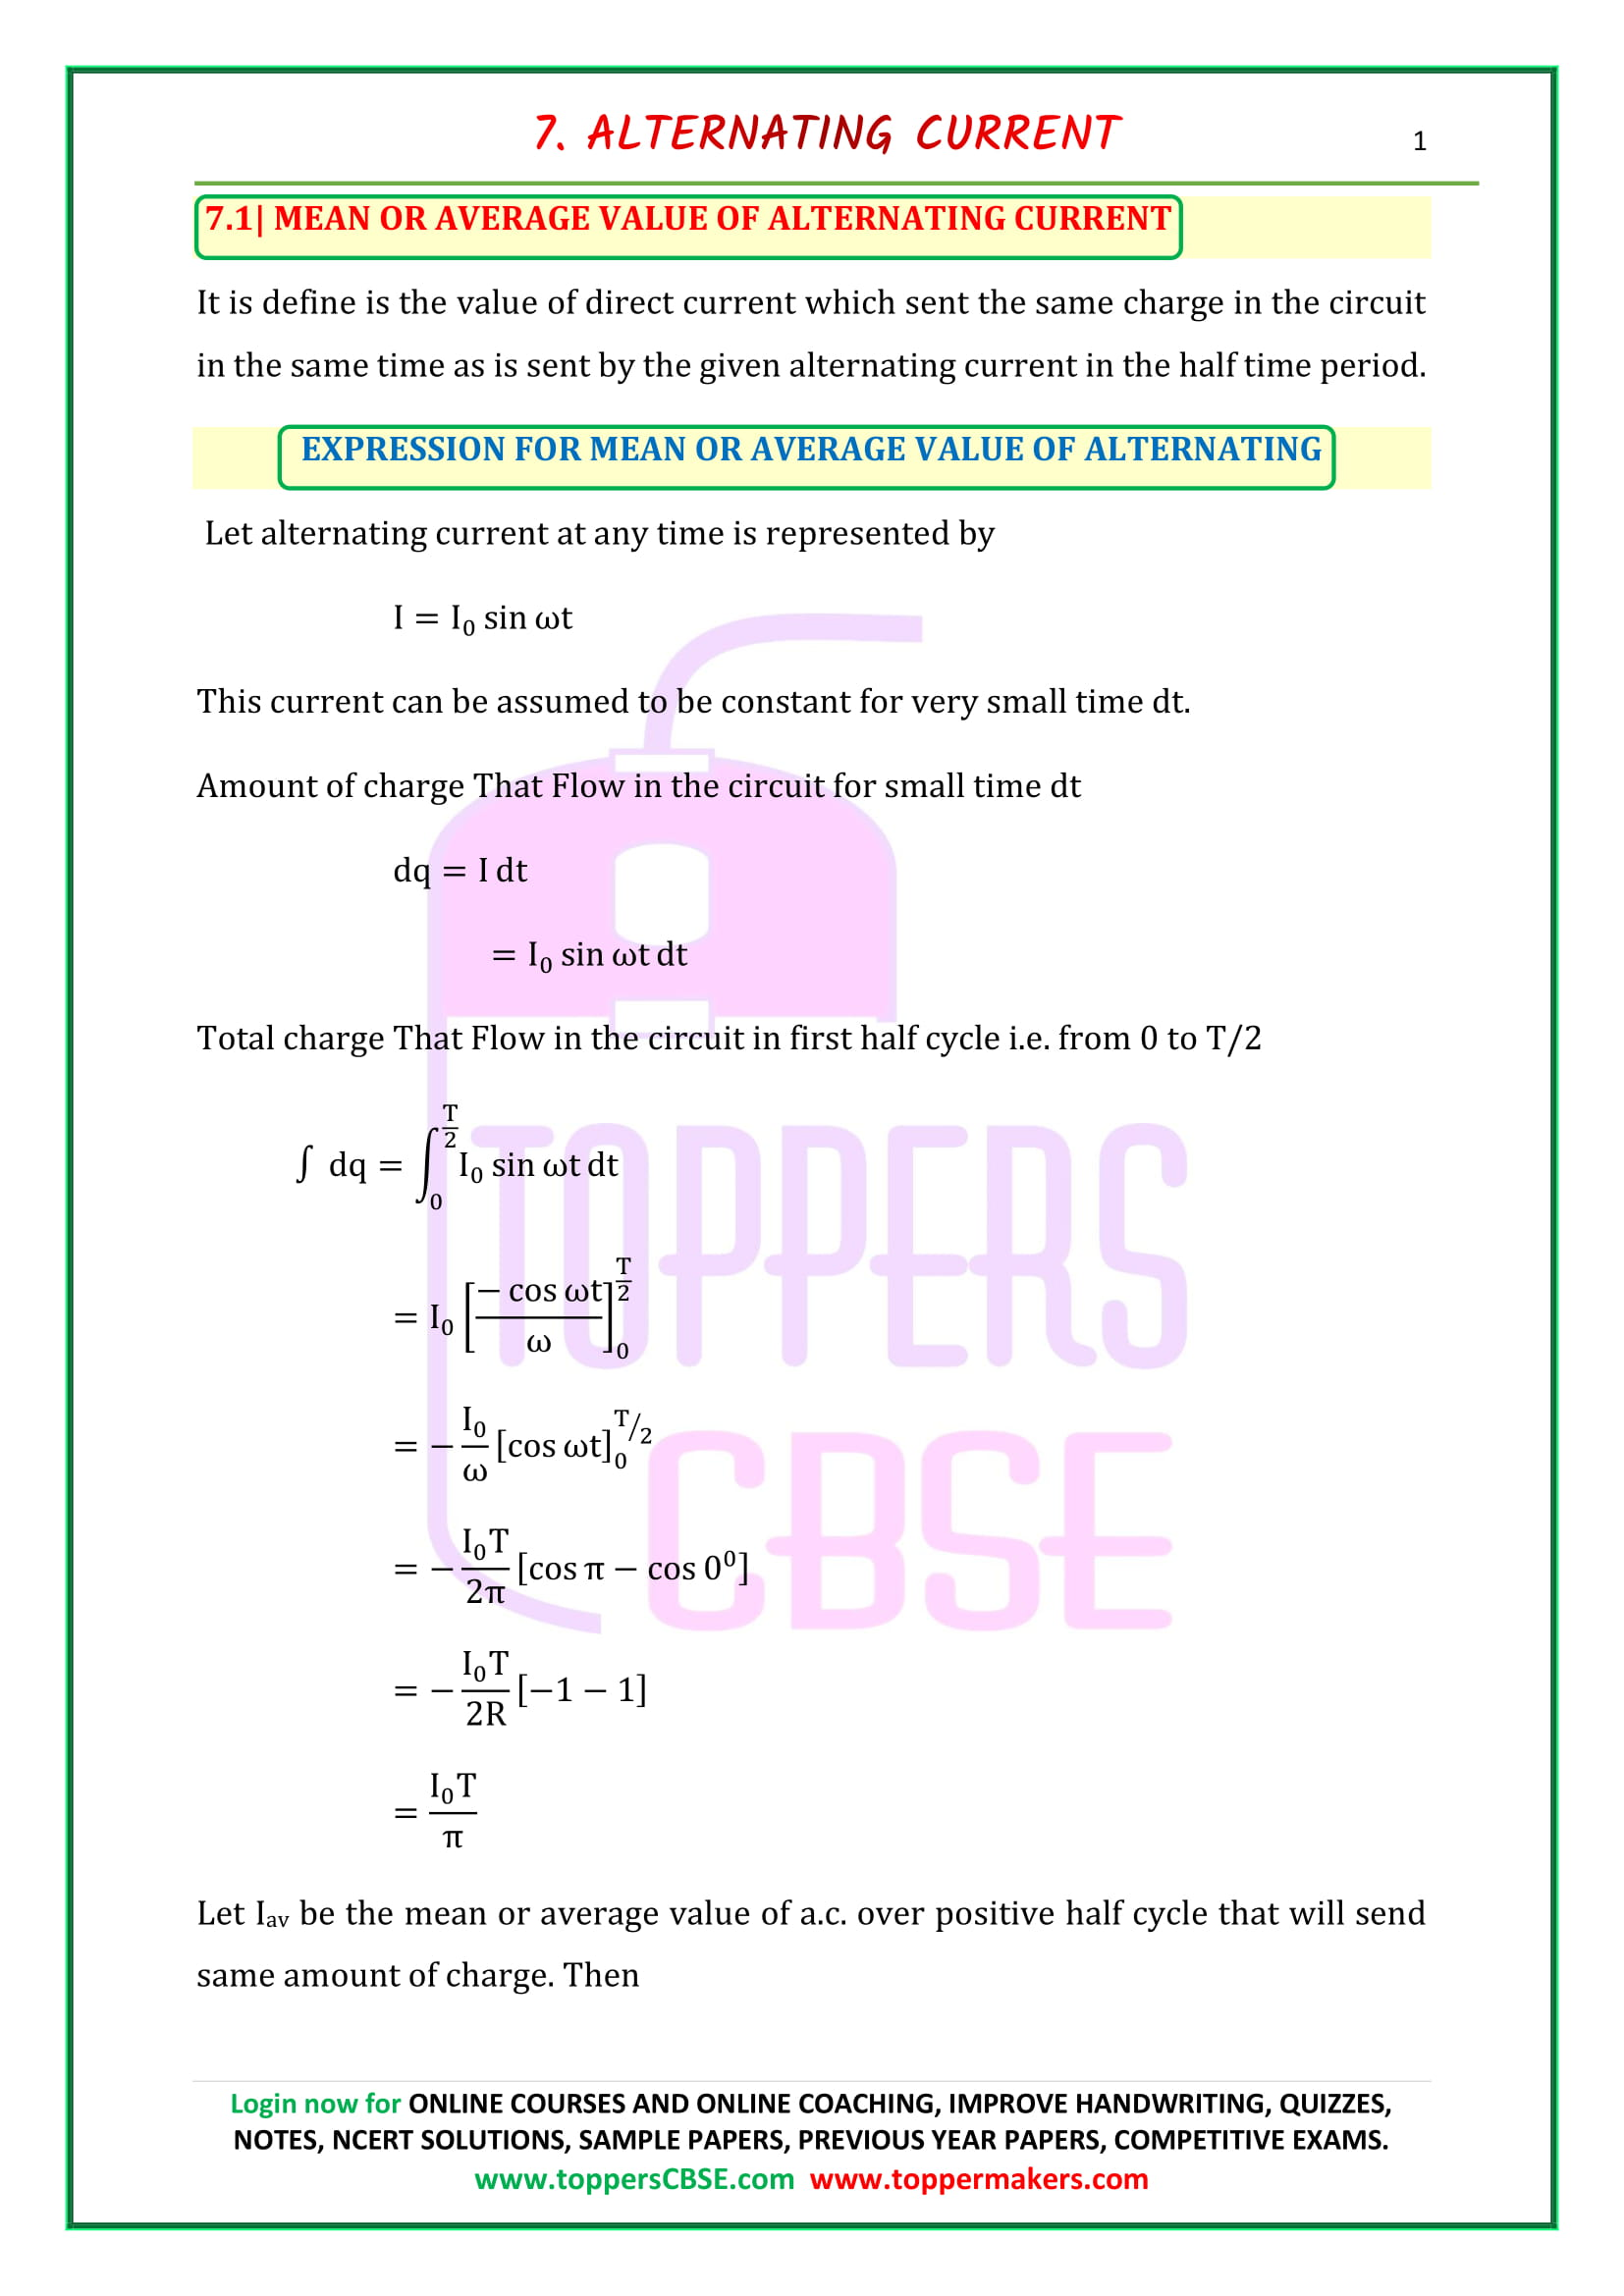 cbse class 12 physics notes chapter 7